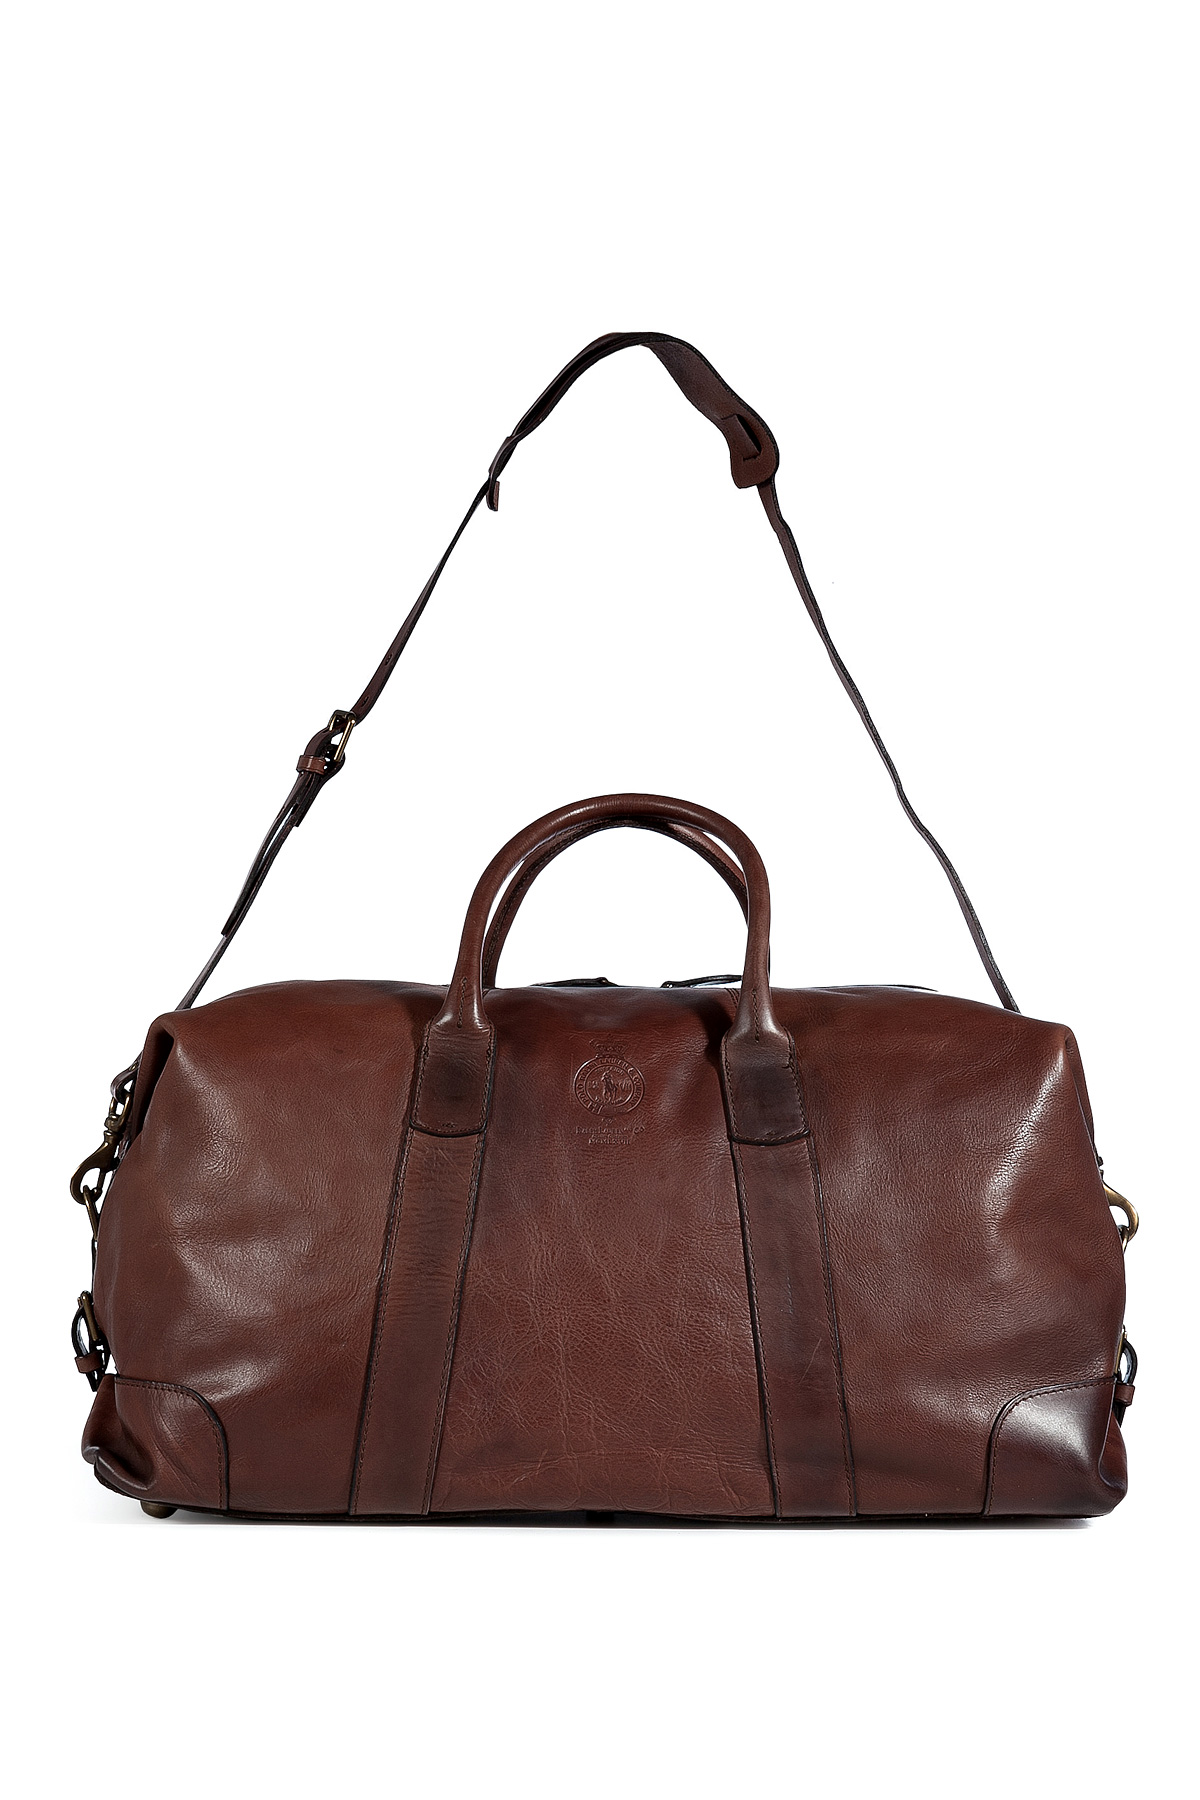 2bd405b699 ... canada lyst ralph lauren brown leather overnight duffle bag in brown  for men c5cea 010a4